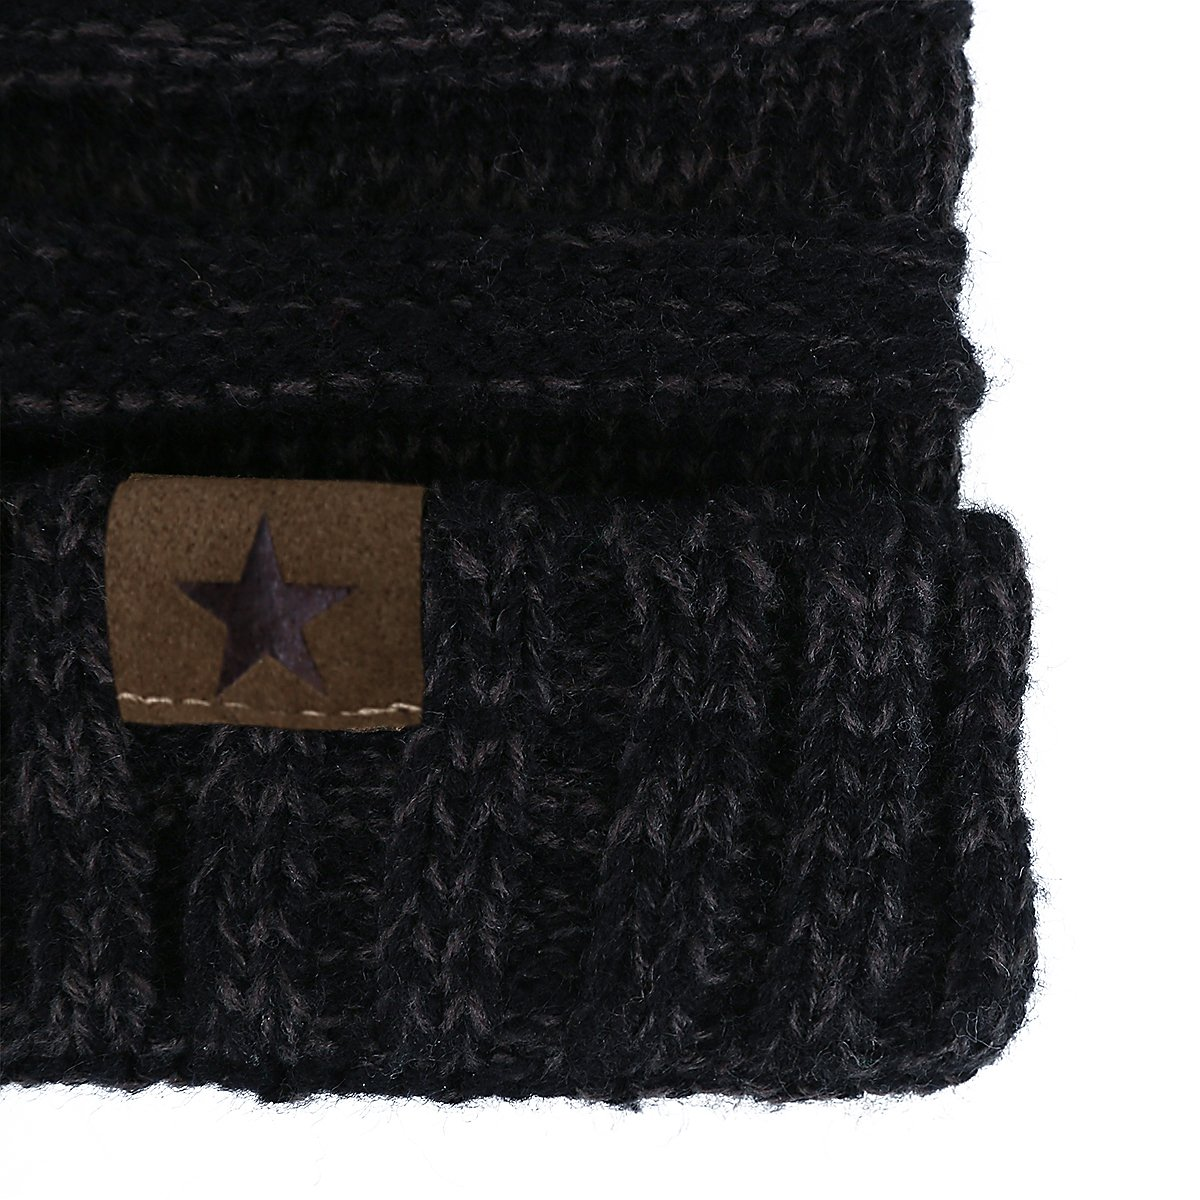 EVRFELAN Soft Winter Warm Knitting Hat Cable Beanie Solid Daily Slouchy Hats Skull Cap (Black2)